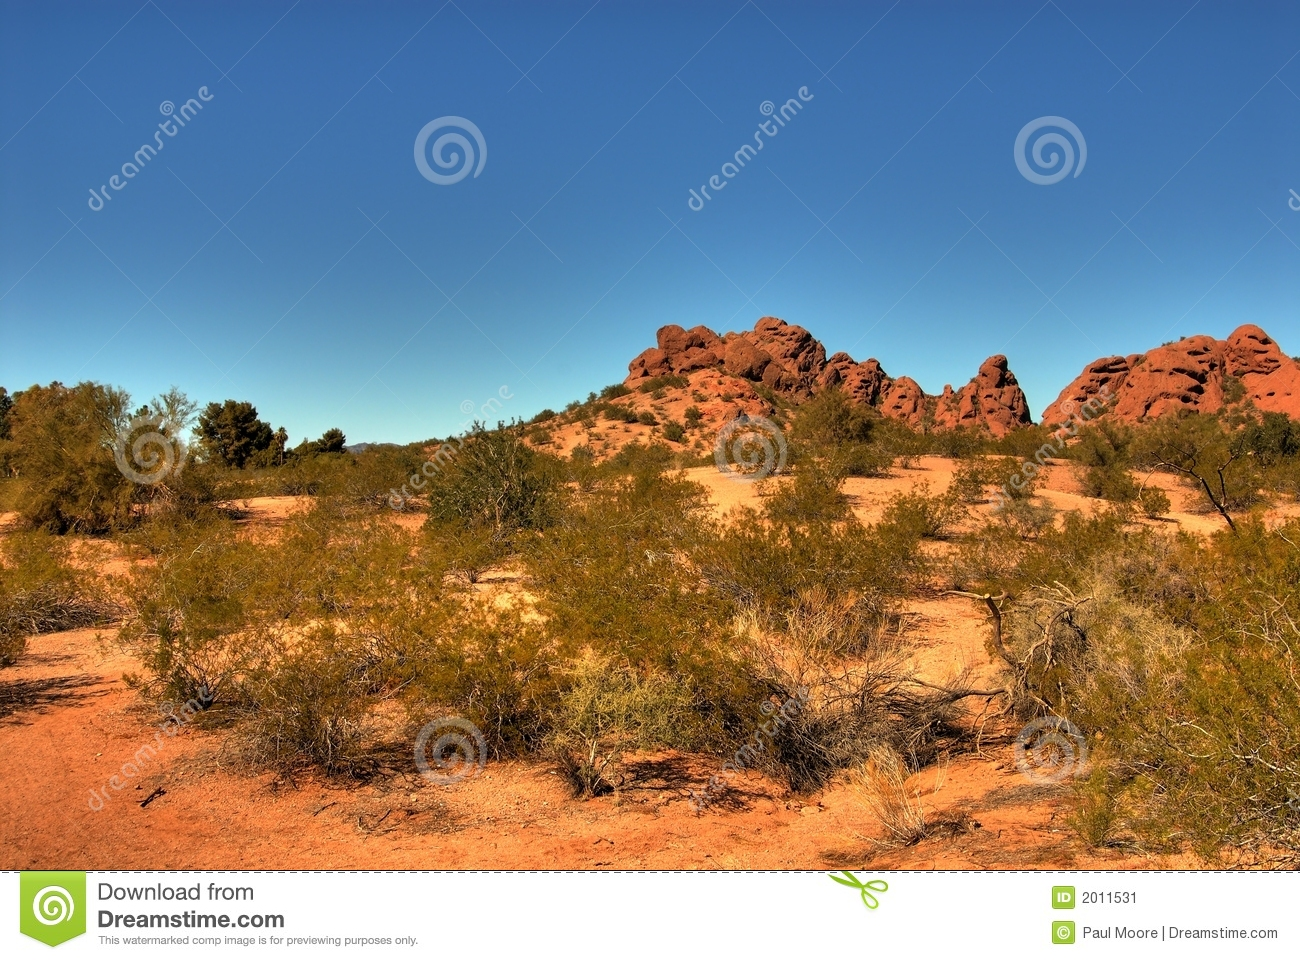 Download Desert Mountain 104 stock image. Image of prickly, sandstone - 2011531